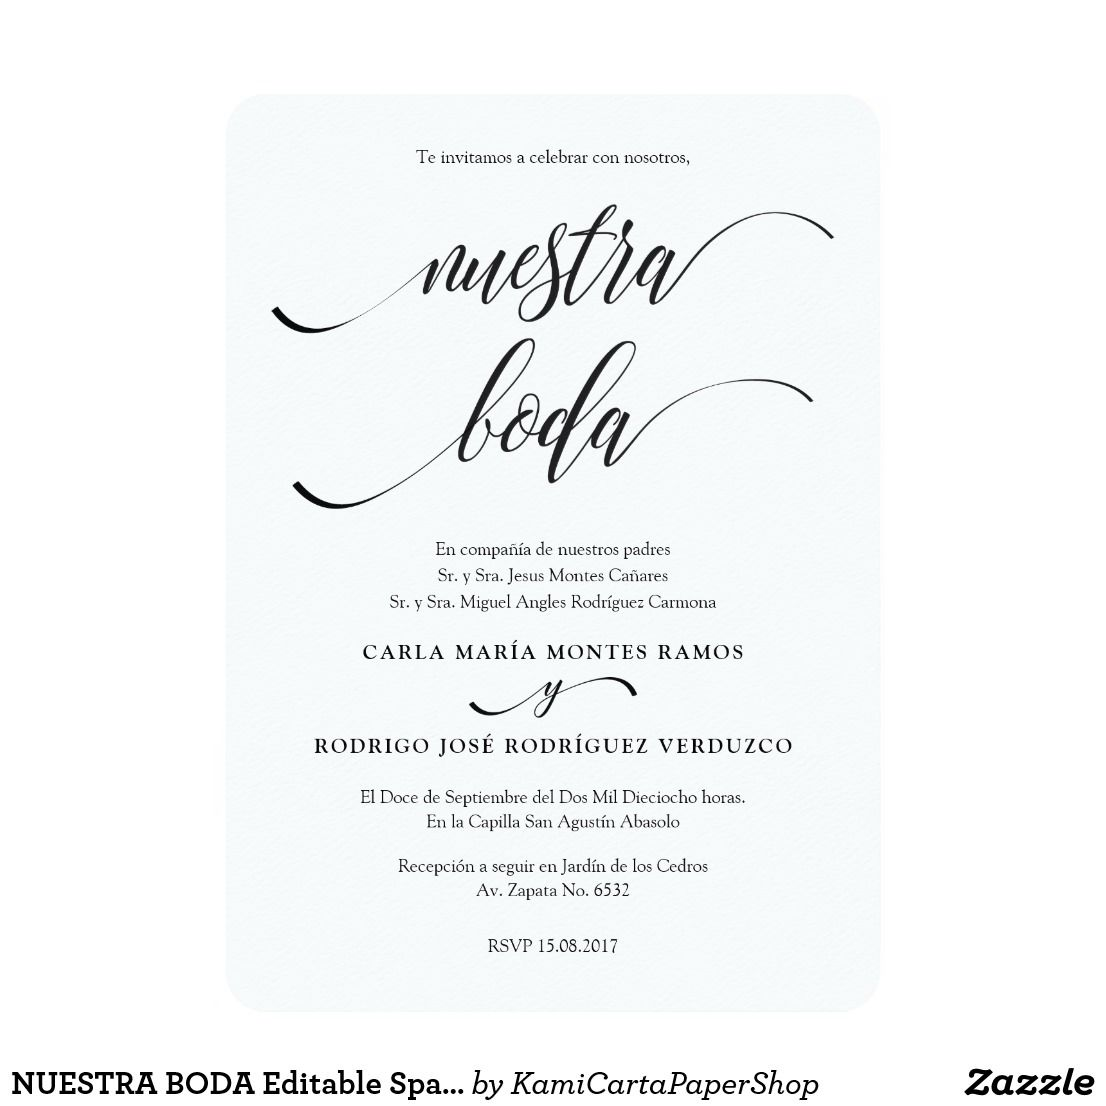 NUESTRA BODA Editable Spanish Wedding Invitation